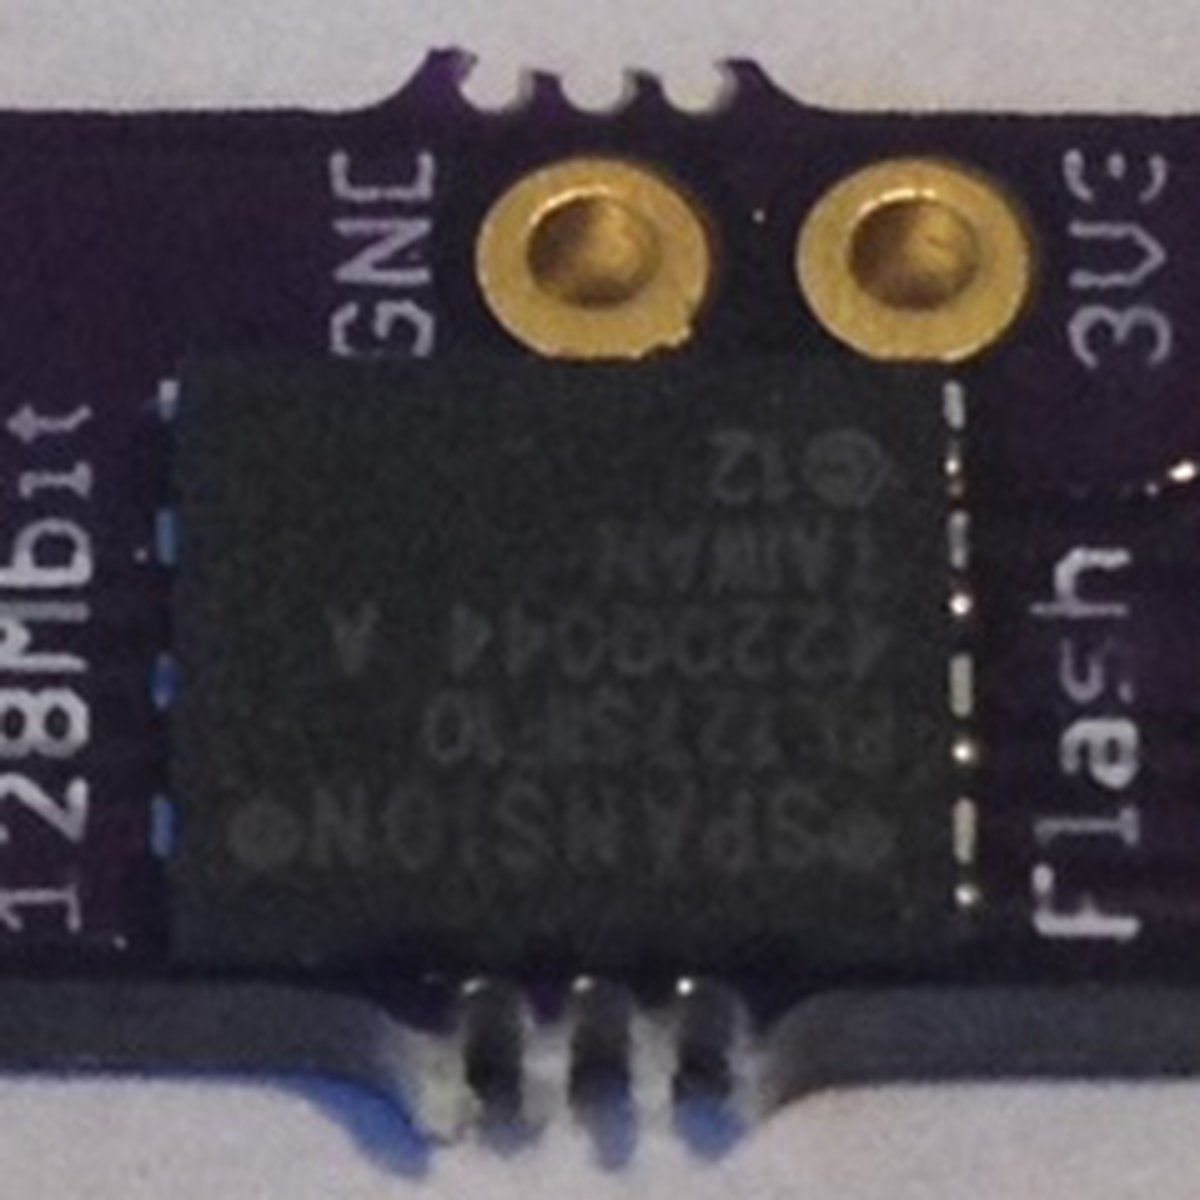 SPI Flash Memory Add-ons for Teensy 3 X from Pesky Products